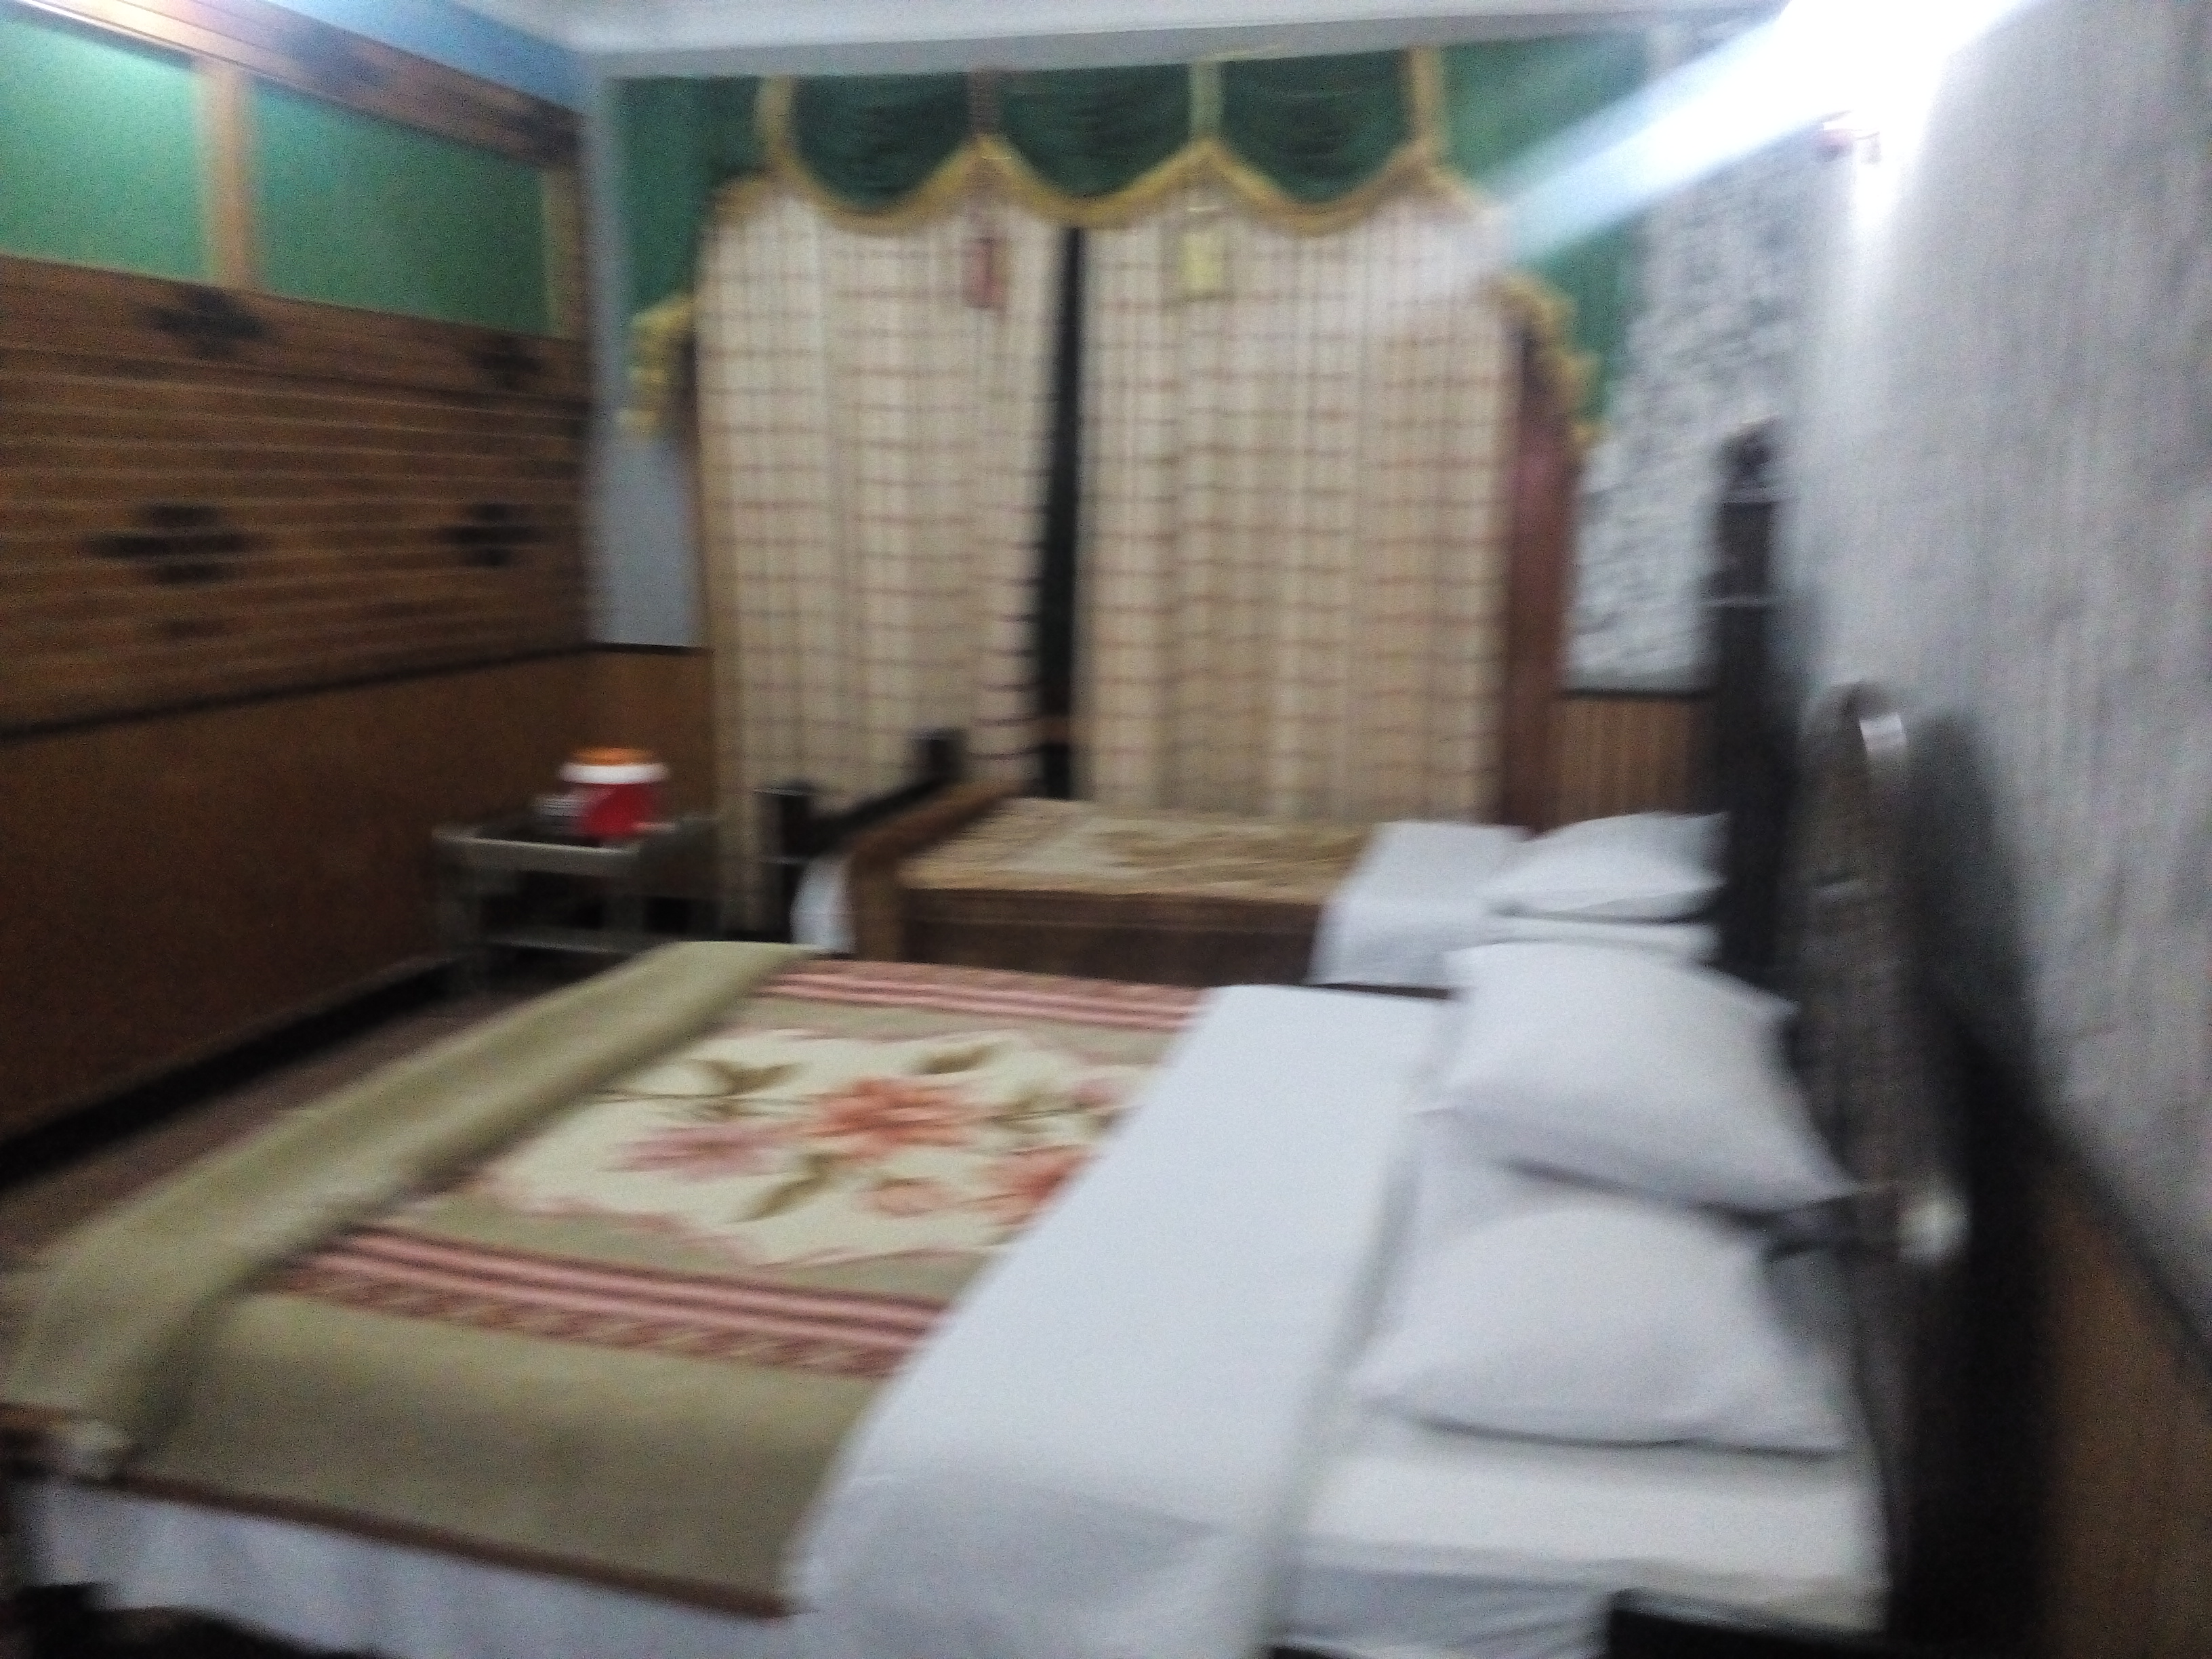 Honeymoon Hotel Kalam 8,9,10_image